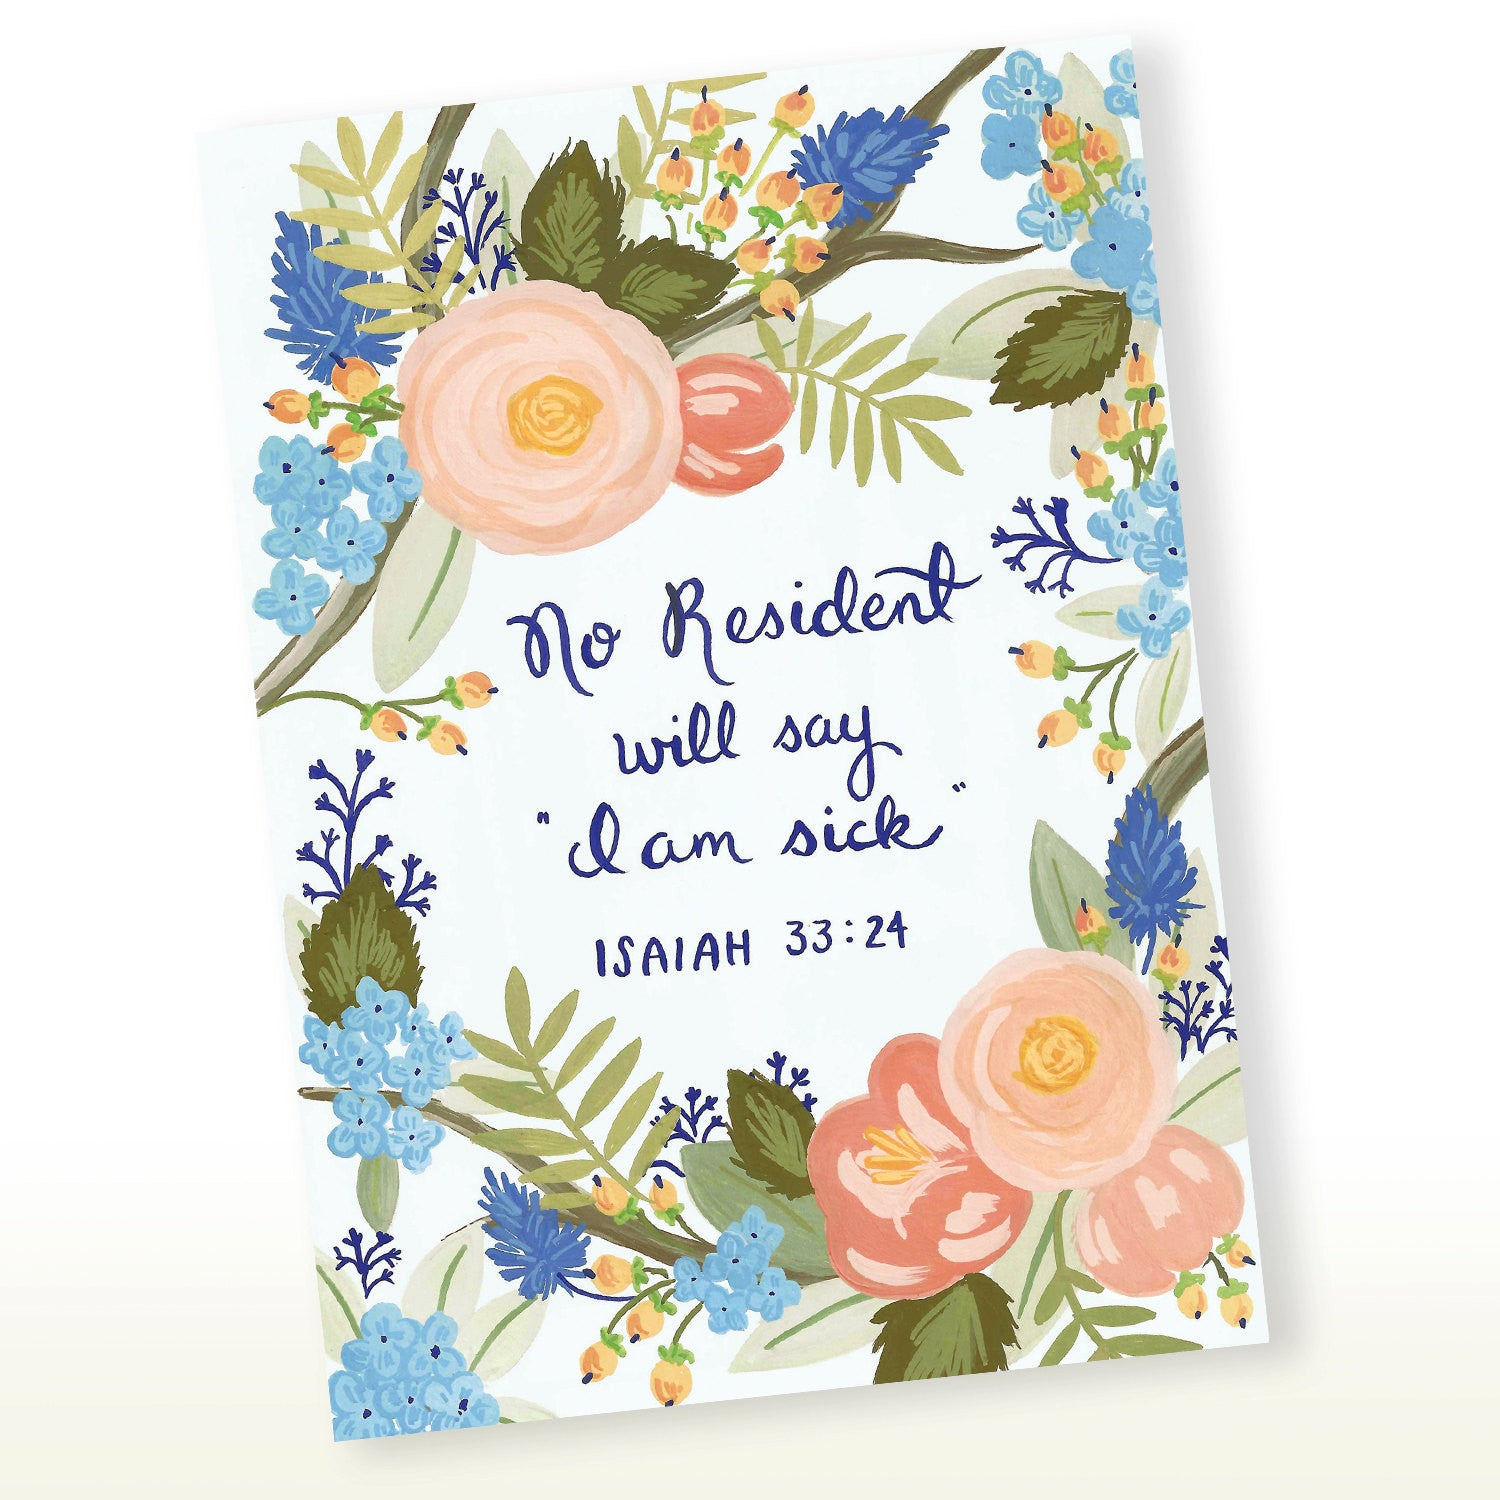 No Resident Will Say I am Sick - Isaiah 33:24 Greeting Card